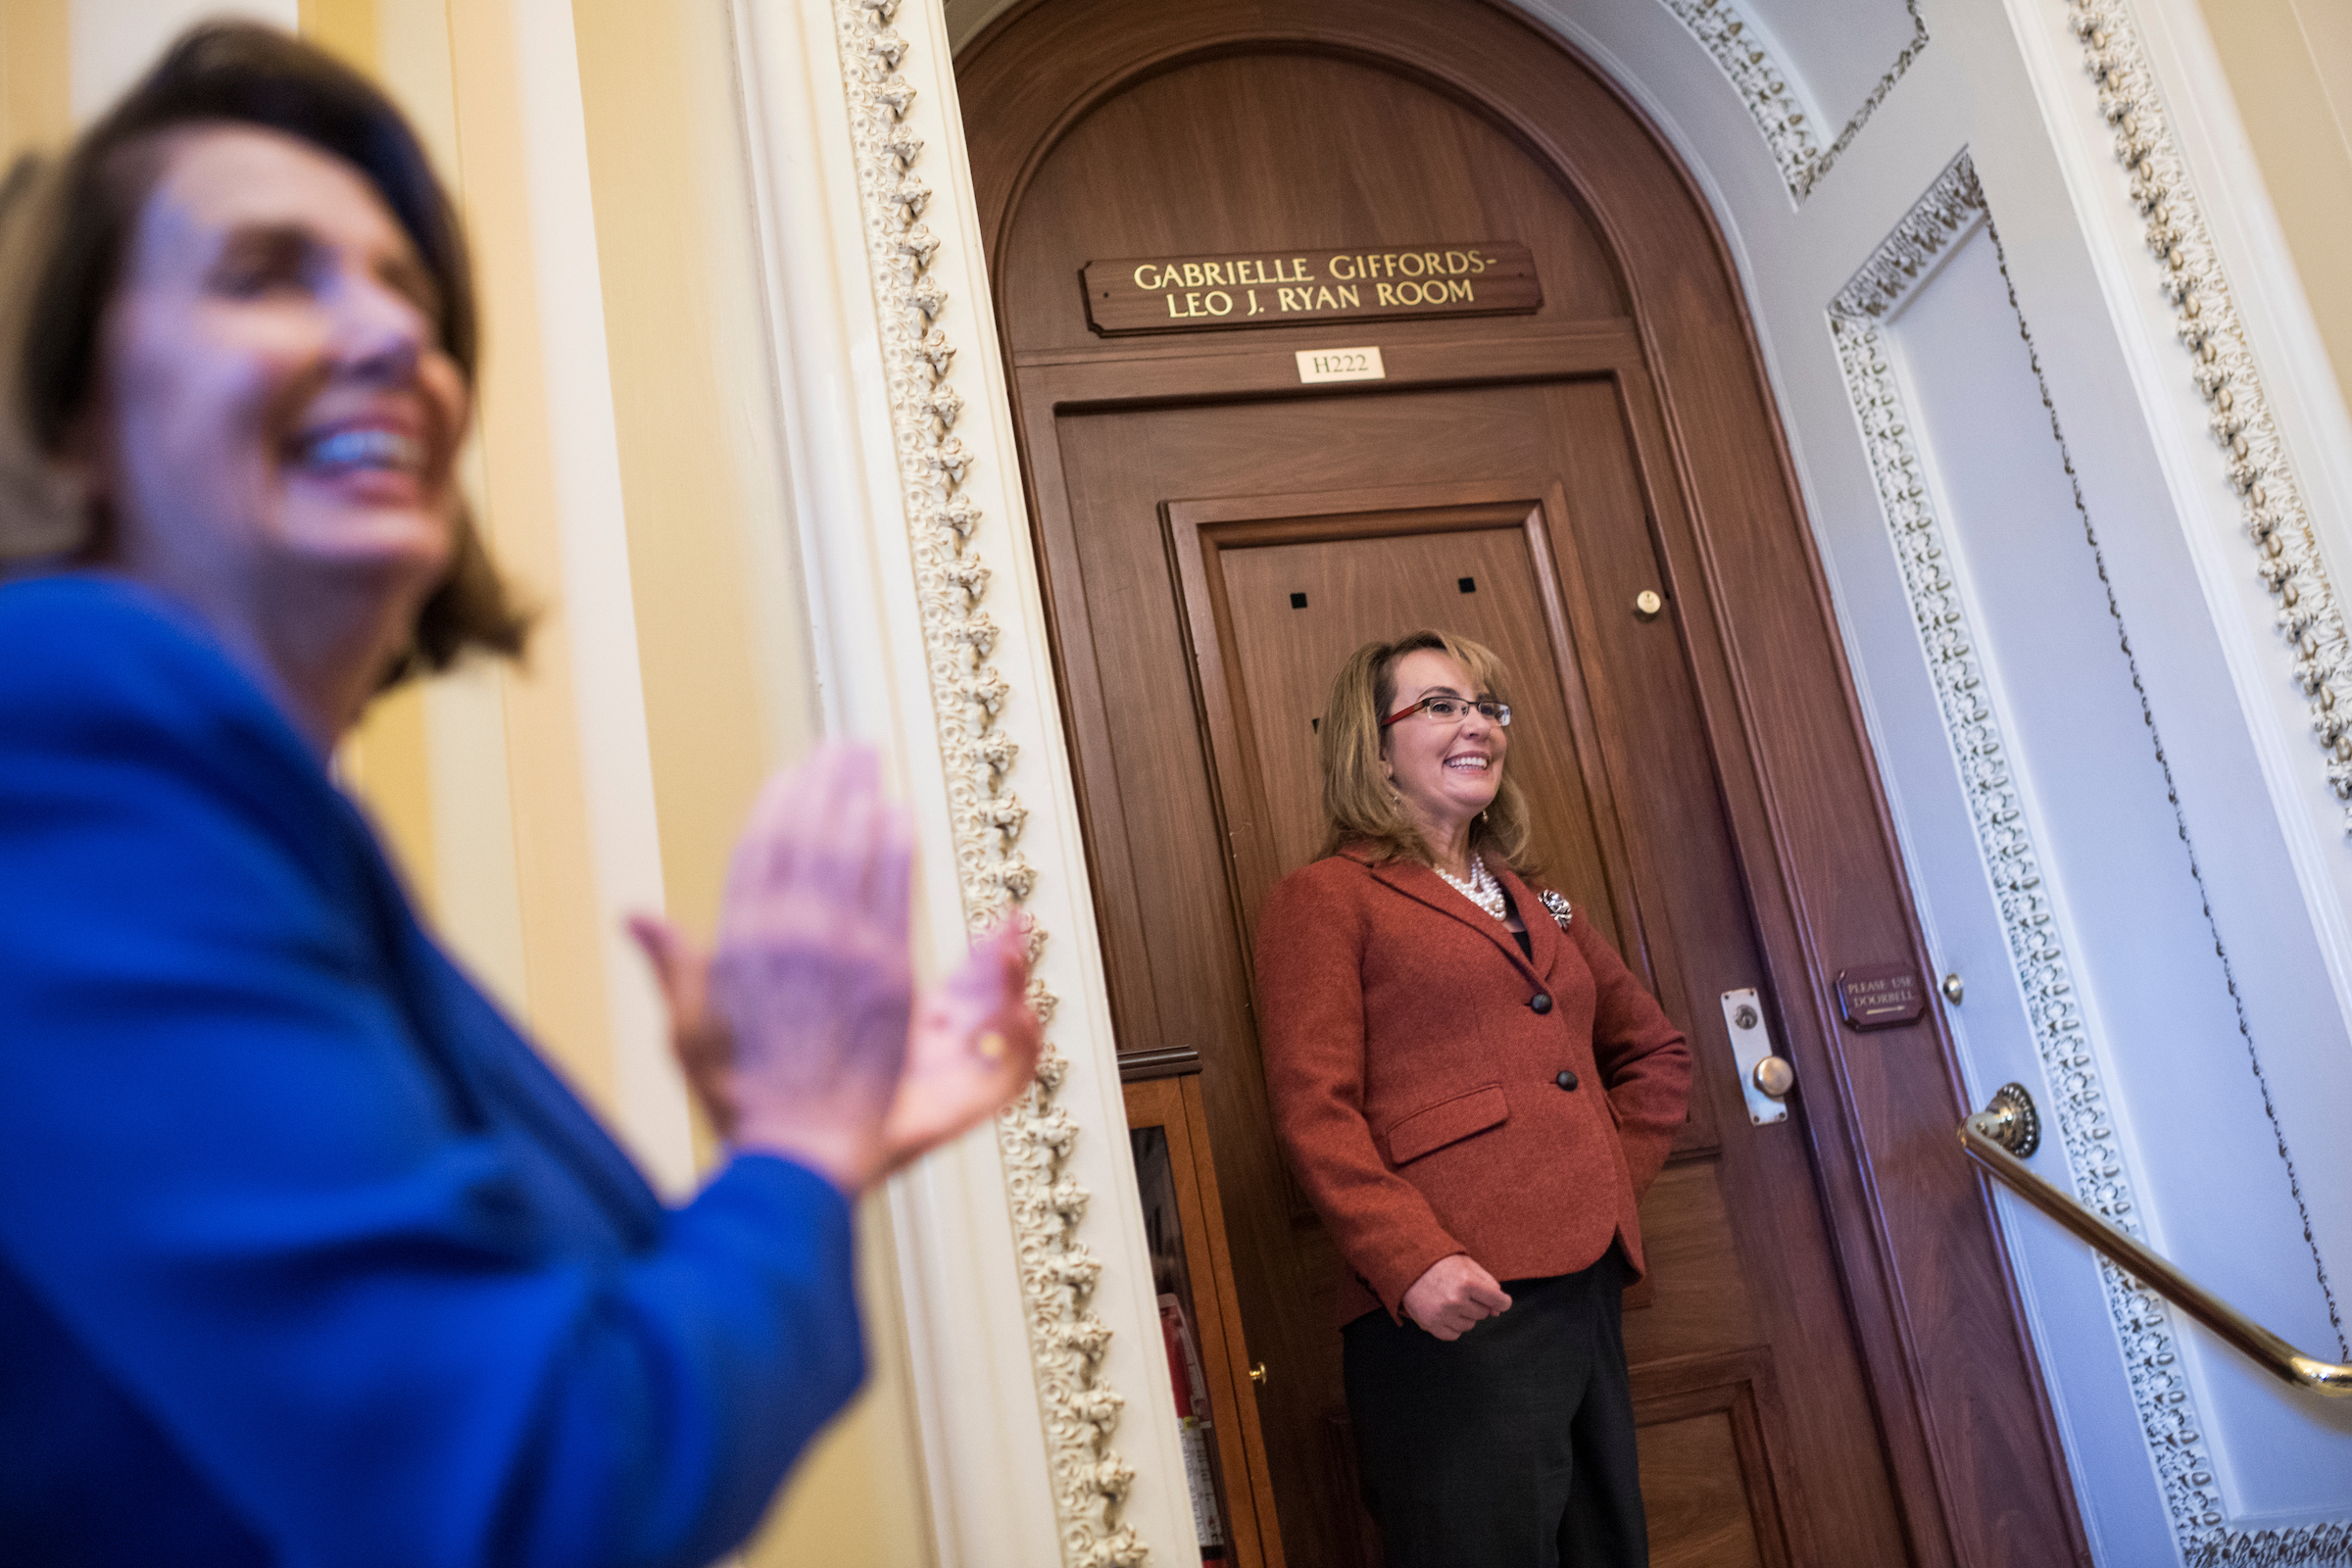 : Former Rep. Gabrielle Giffords, D-Ariz., poses outside the House Democratic Cloakroom in the Capitol as House Minority Leader Nancy Pelosi, D-Calif., looks on, on November 15, 2017, which was named in honor of Giffords and the late Rep. Leo Ryan, D-Calif., who were victims of gun violence. Ryan was killed in the 1978 Jonestown massacre and his aide, Rep. Jackie Speier, D-Calif., was wounded, and Giffords was wounded in the 2011 Tucson shooting. (Photo By Tom Williams/CQ Roll Call)